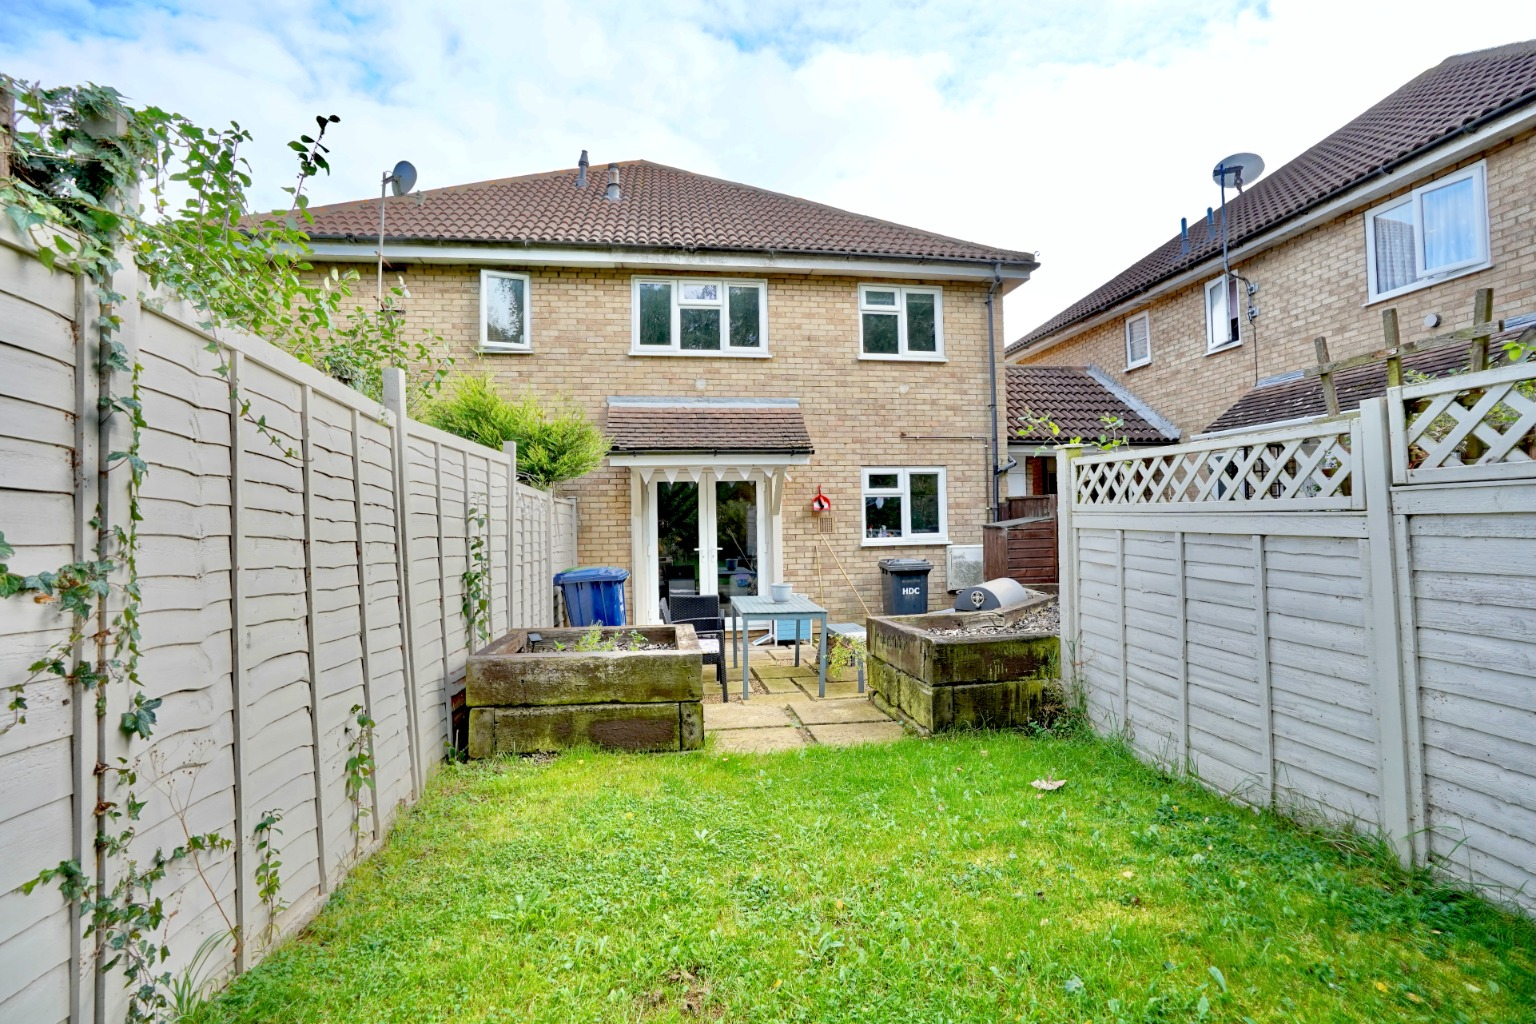 2 bed terraced house for sale in Meadowsweet, St. Neots - Property Image 1